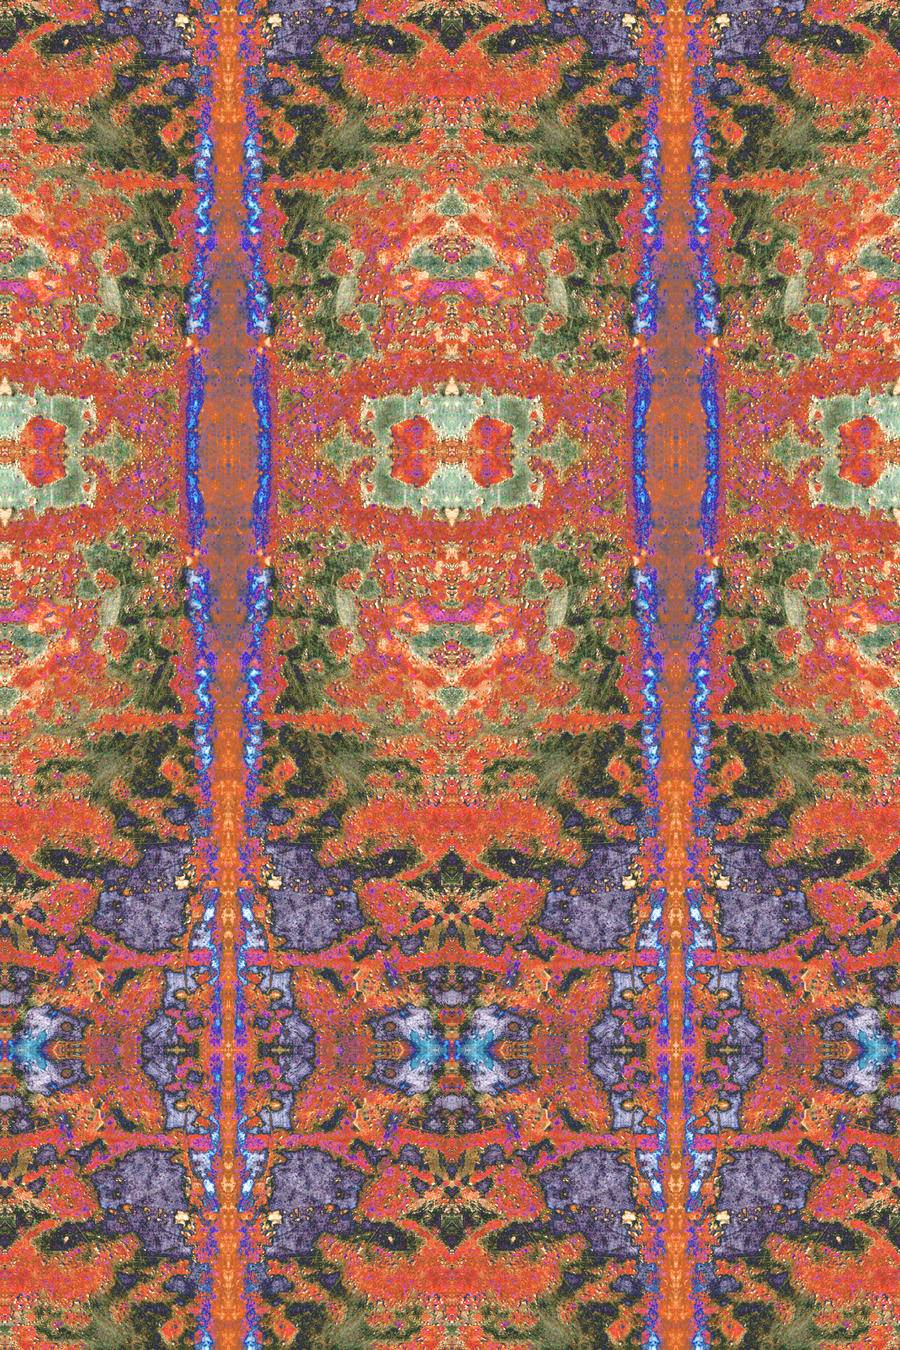 Solarised Truck Tailgate Detail Persian Carpet by aegiandyad